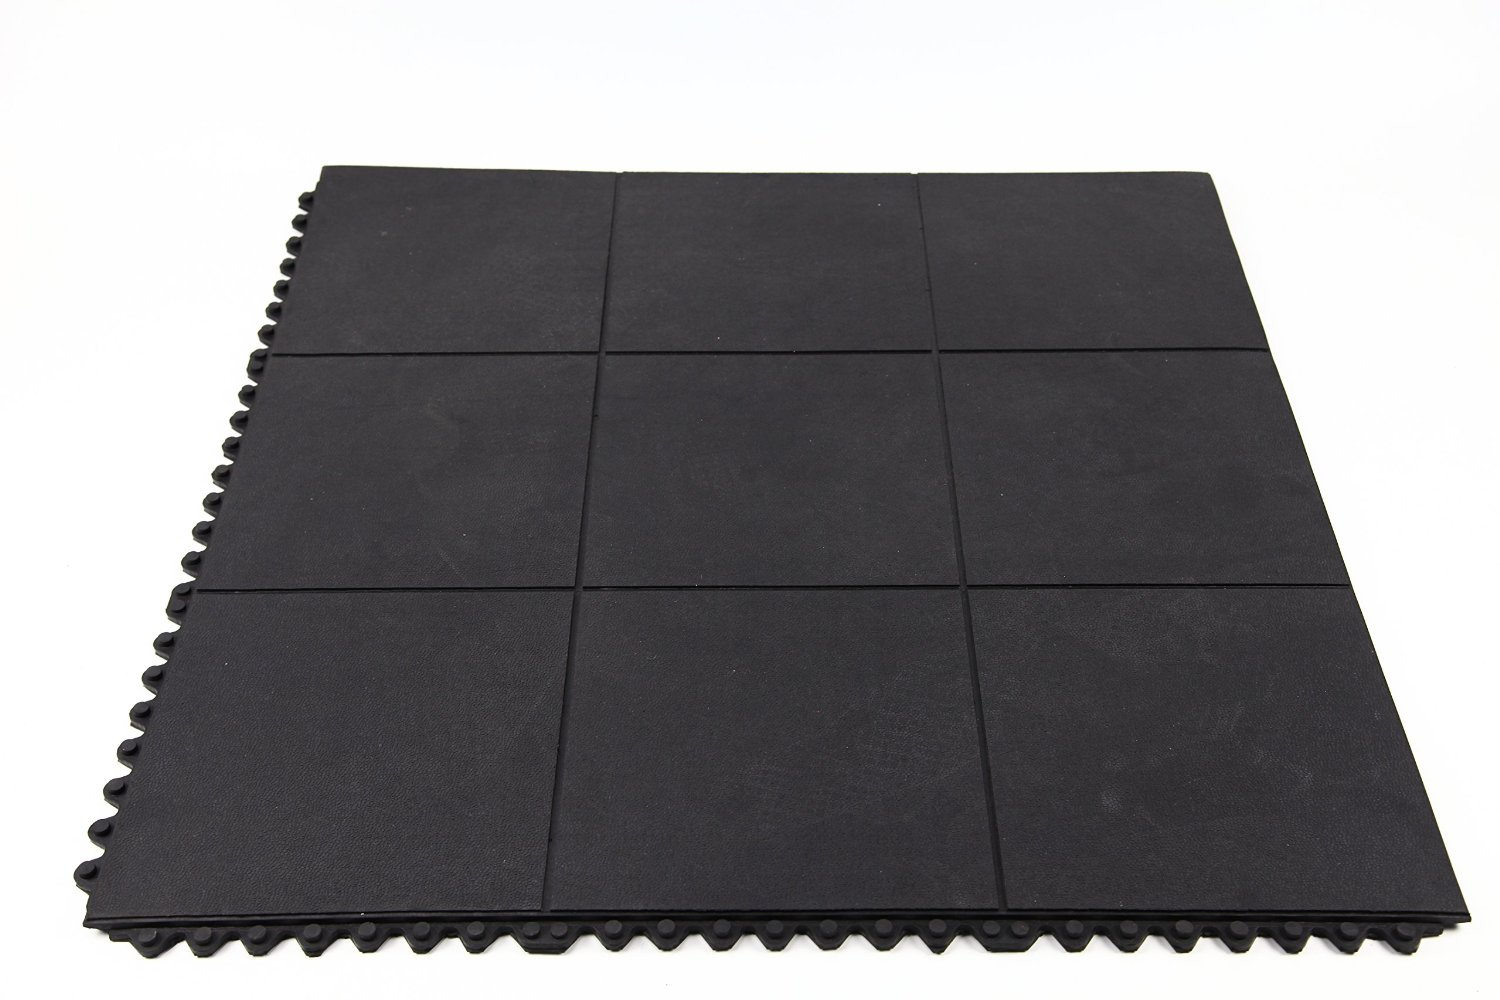 Incstores Evolution Rubber Floor Tiles - Equipment Mats, Gym Flooring and Utility